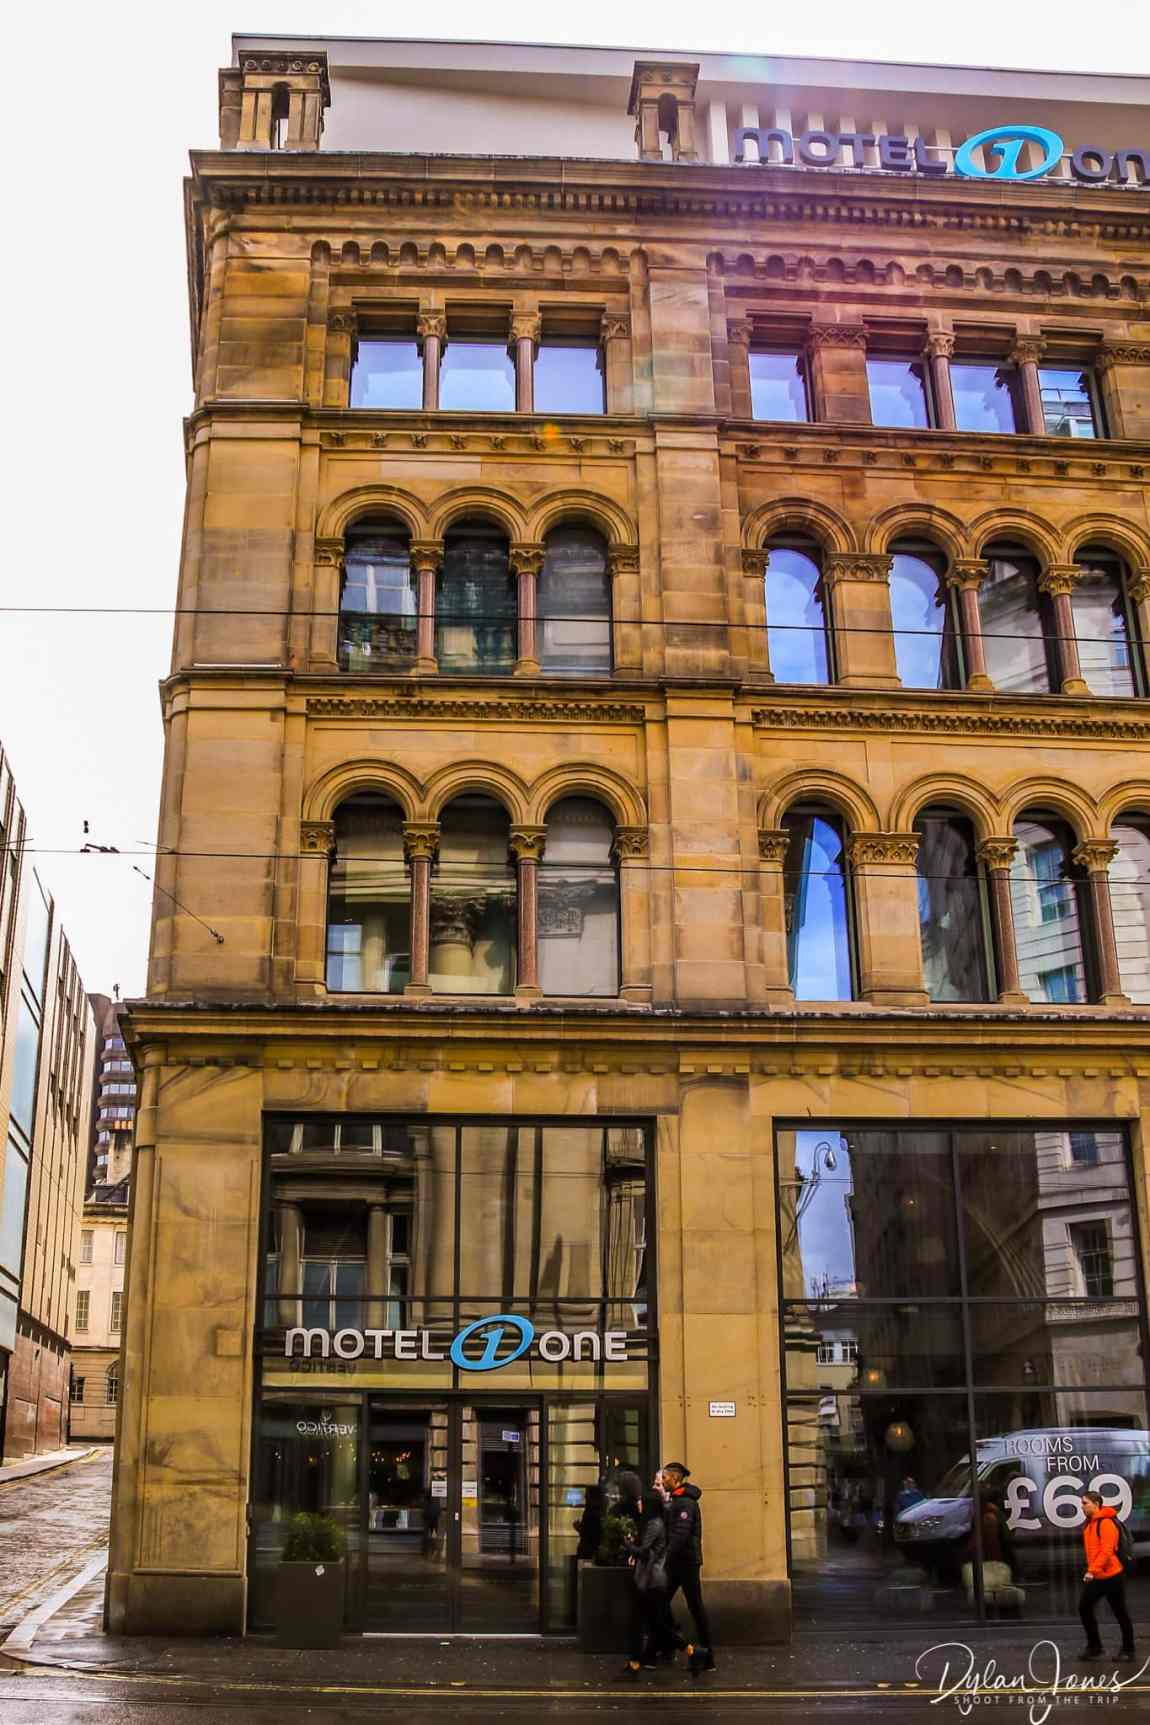 Exterior shot of Motel One Manchester Royal Exchange